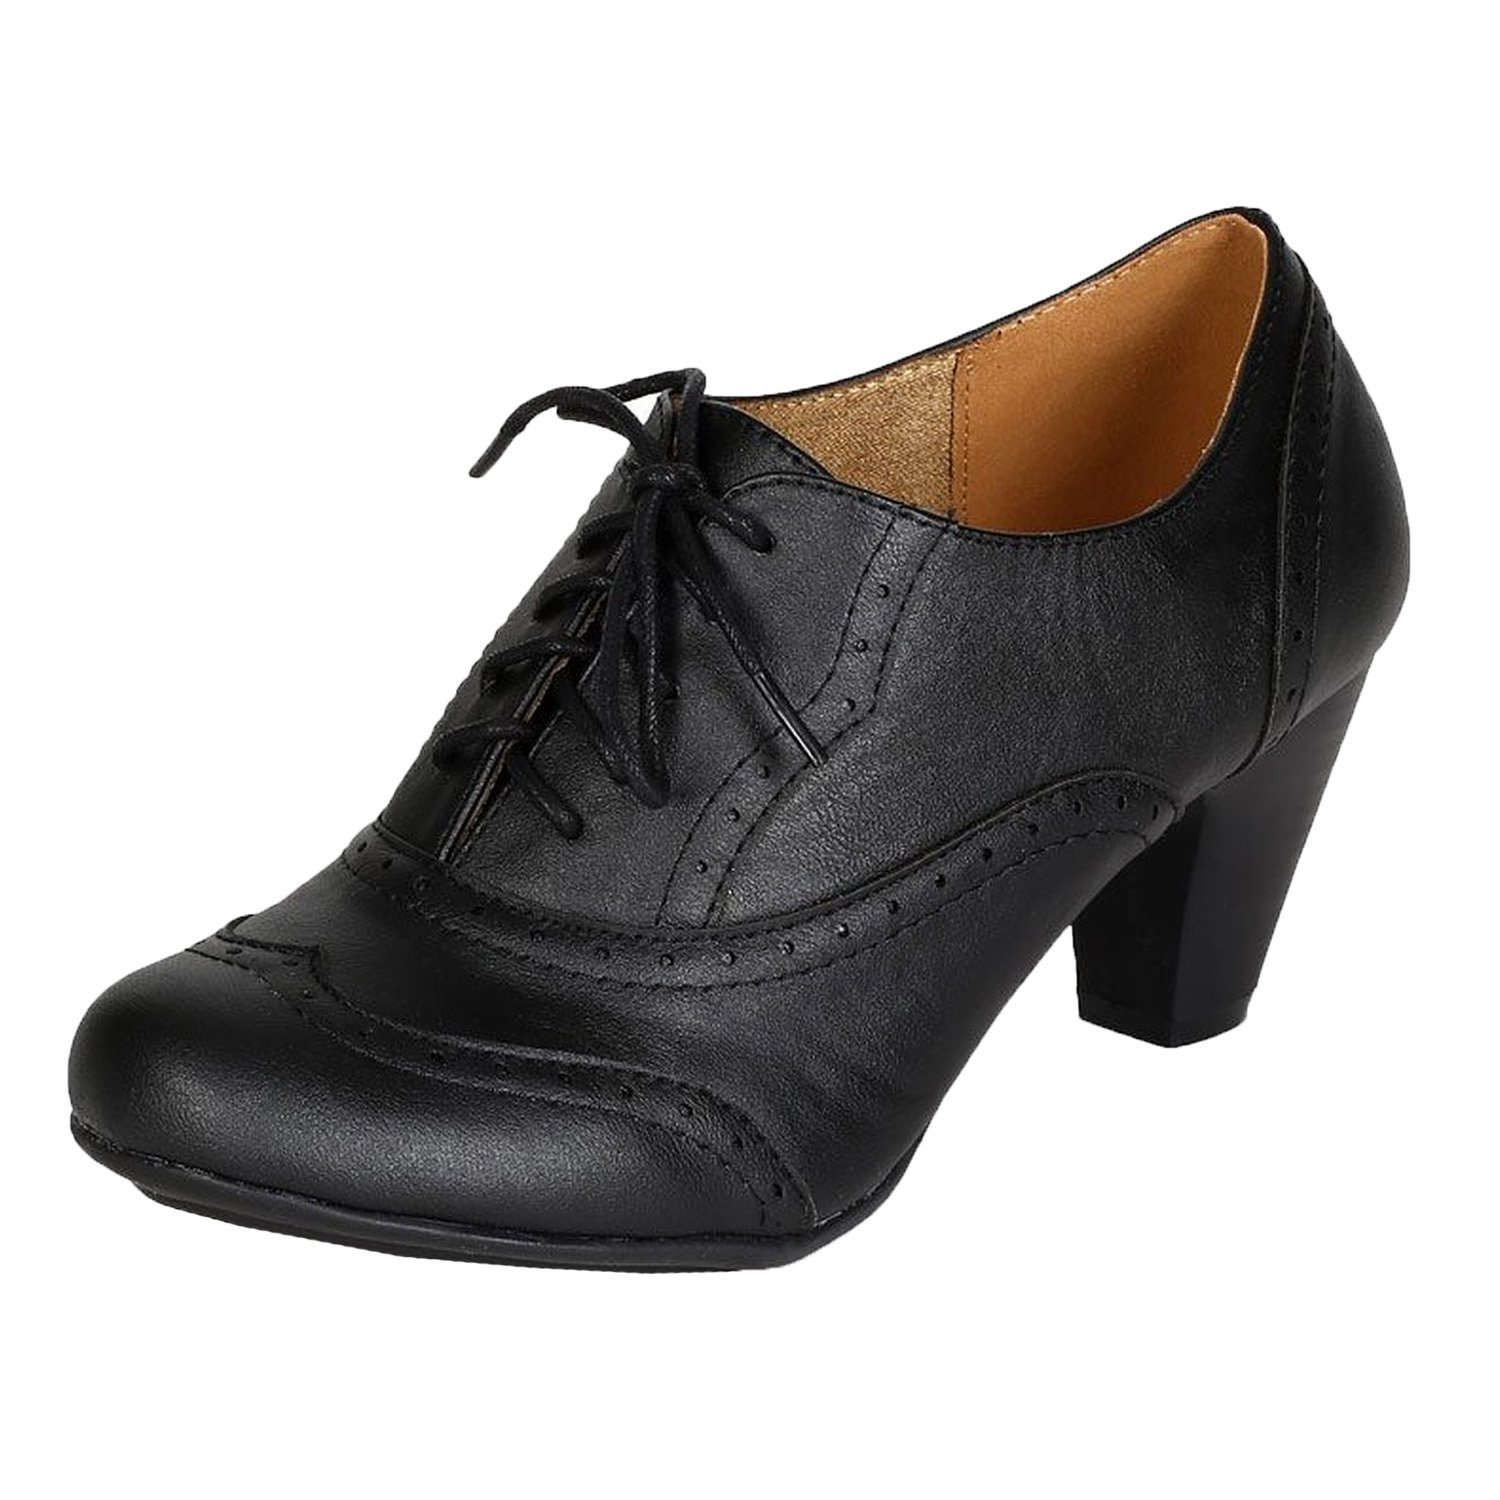 8 Easy 1920s Costumes You Can Make Lace Up Oxford Chunky Heel Bootie $21.99 AT vintagedancer.com